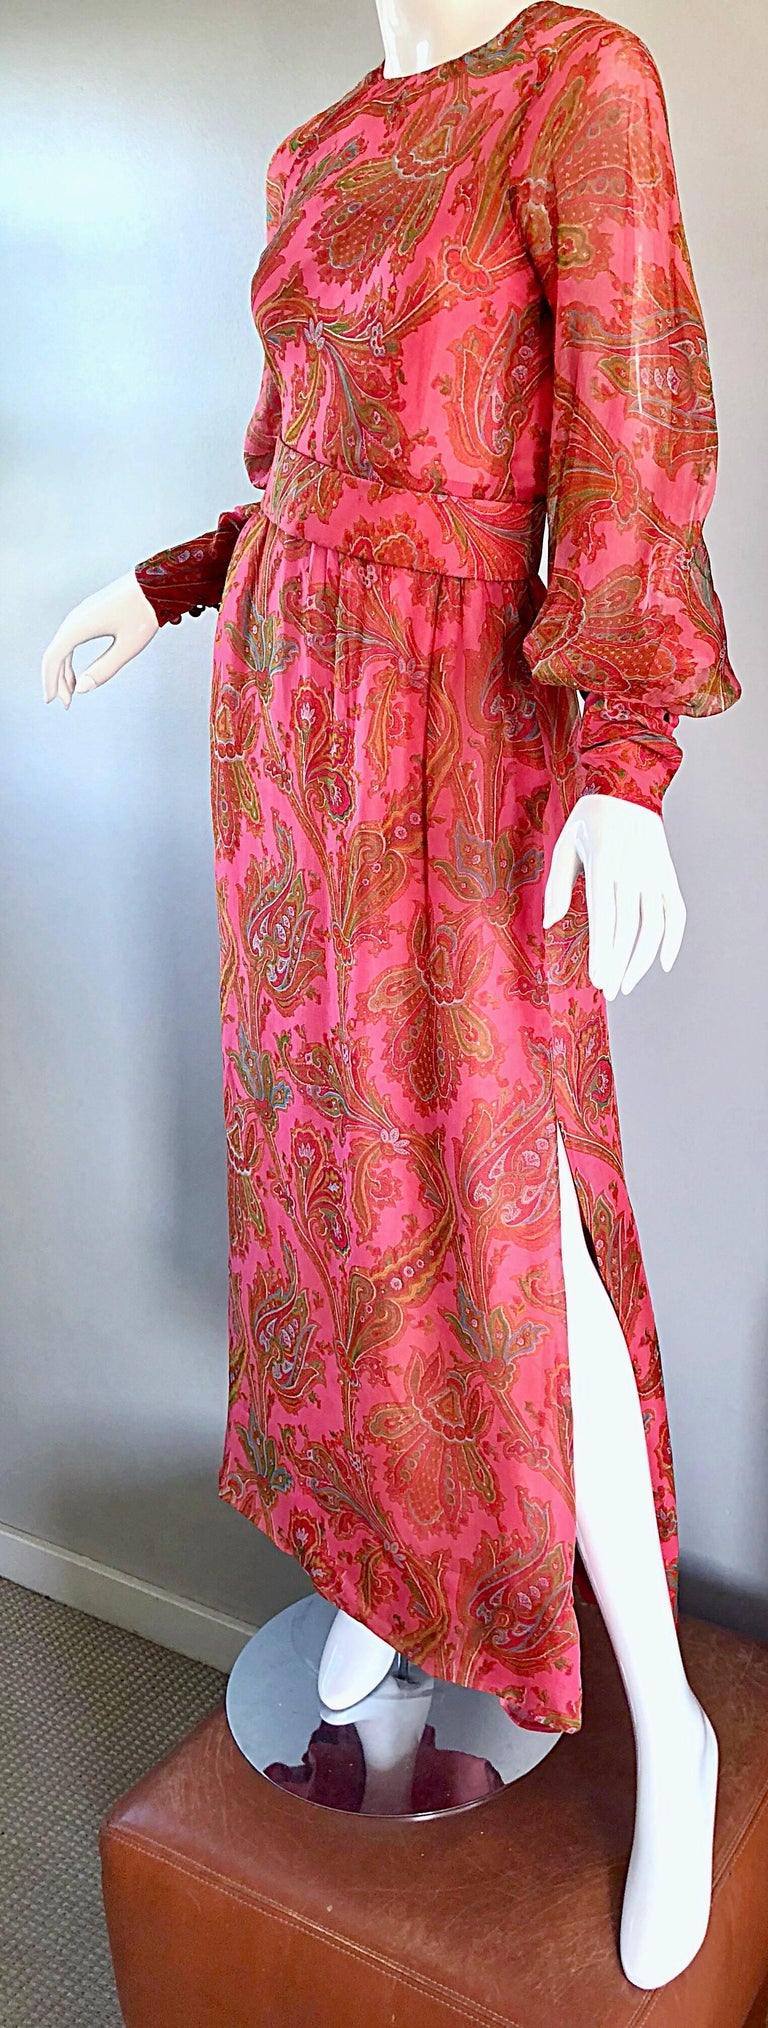 Women's Adele Simpson 1970s Pink Silk Chiffon Paisley Bishop Sleeve Vintage Maxi Dress For Sale